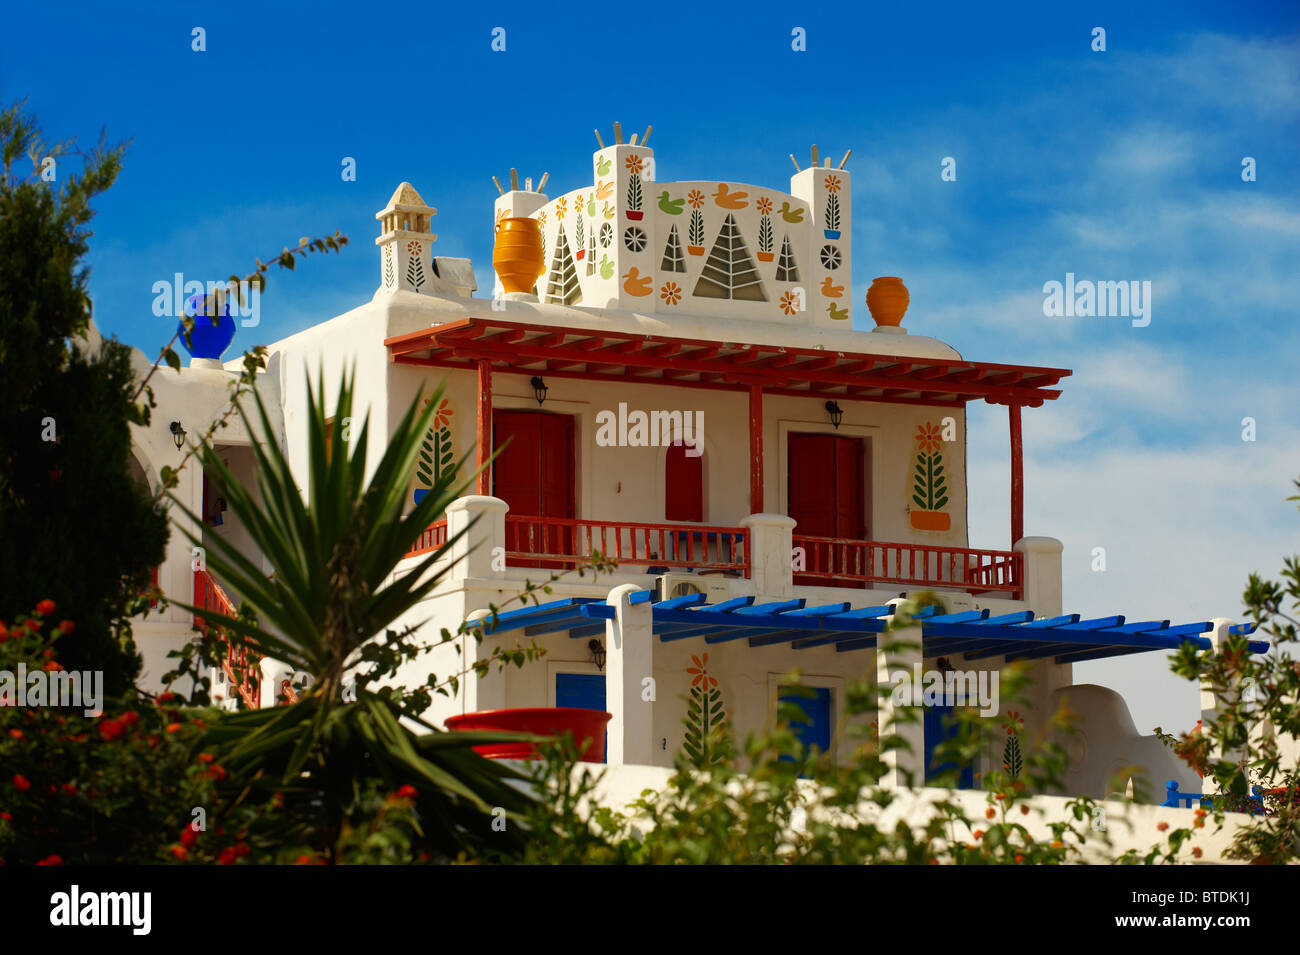 House decorated with traditional folk art. Mykonos, Cyclades Islands, Greece. - Stock Image